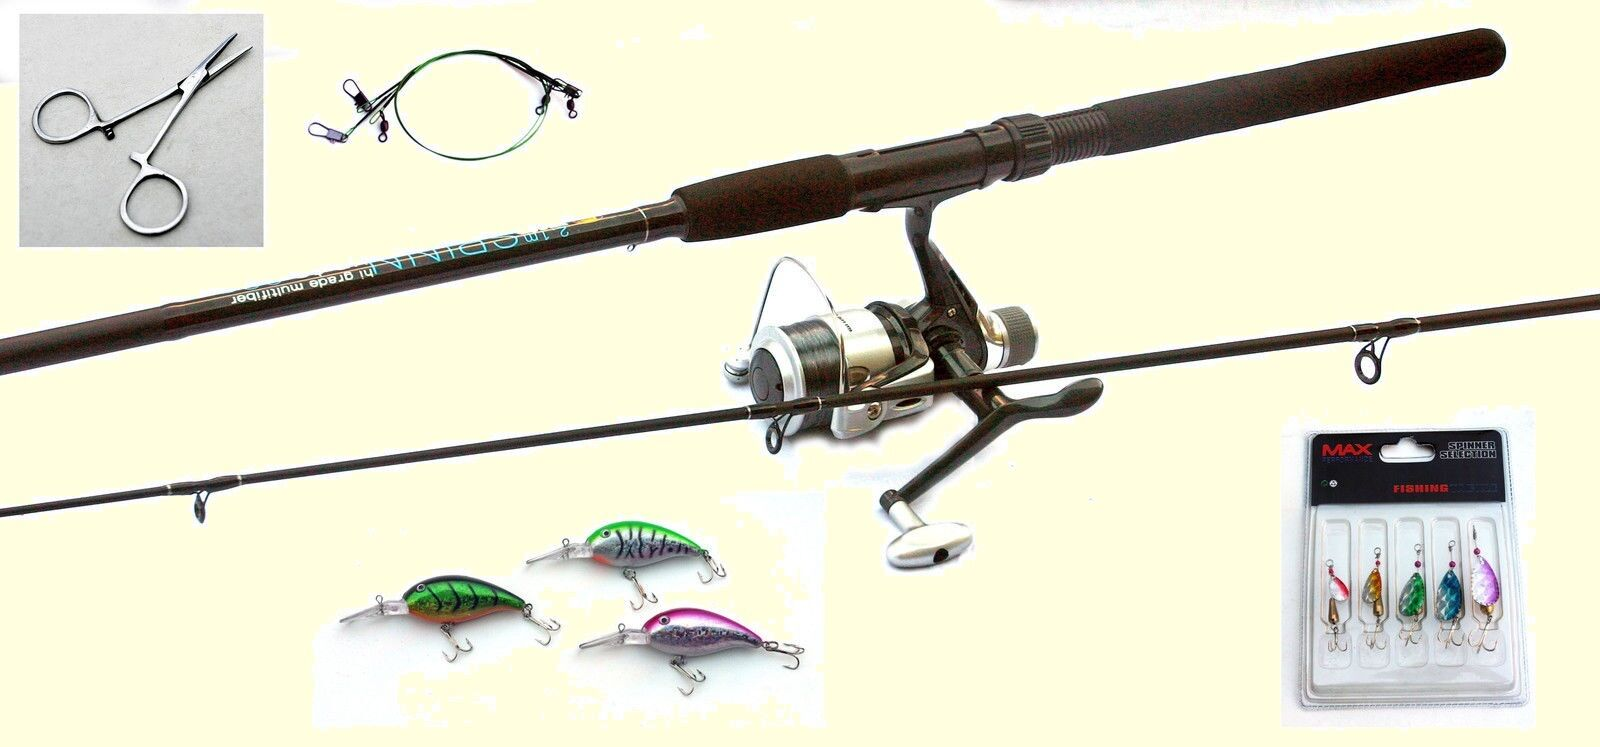 Pike   Perch  Fishing Spinning Kit-Rod,Reel,Line,Spinners,Plugs,Traces,Forcepst